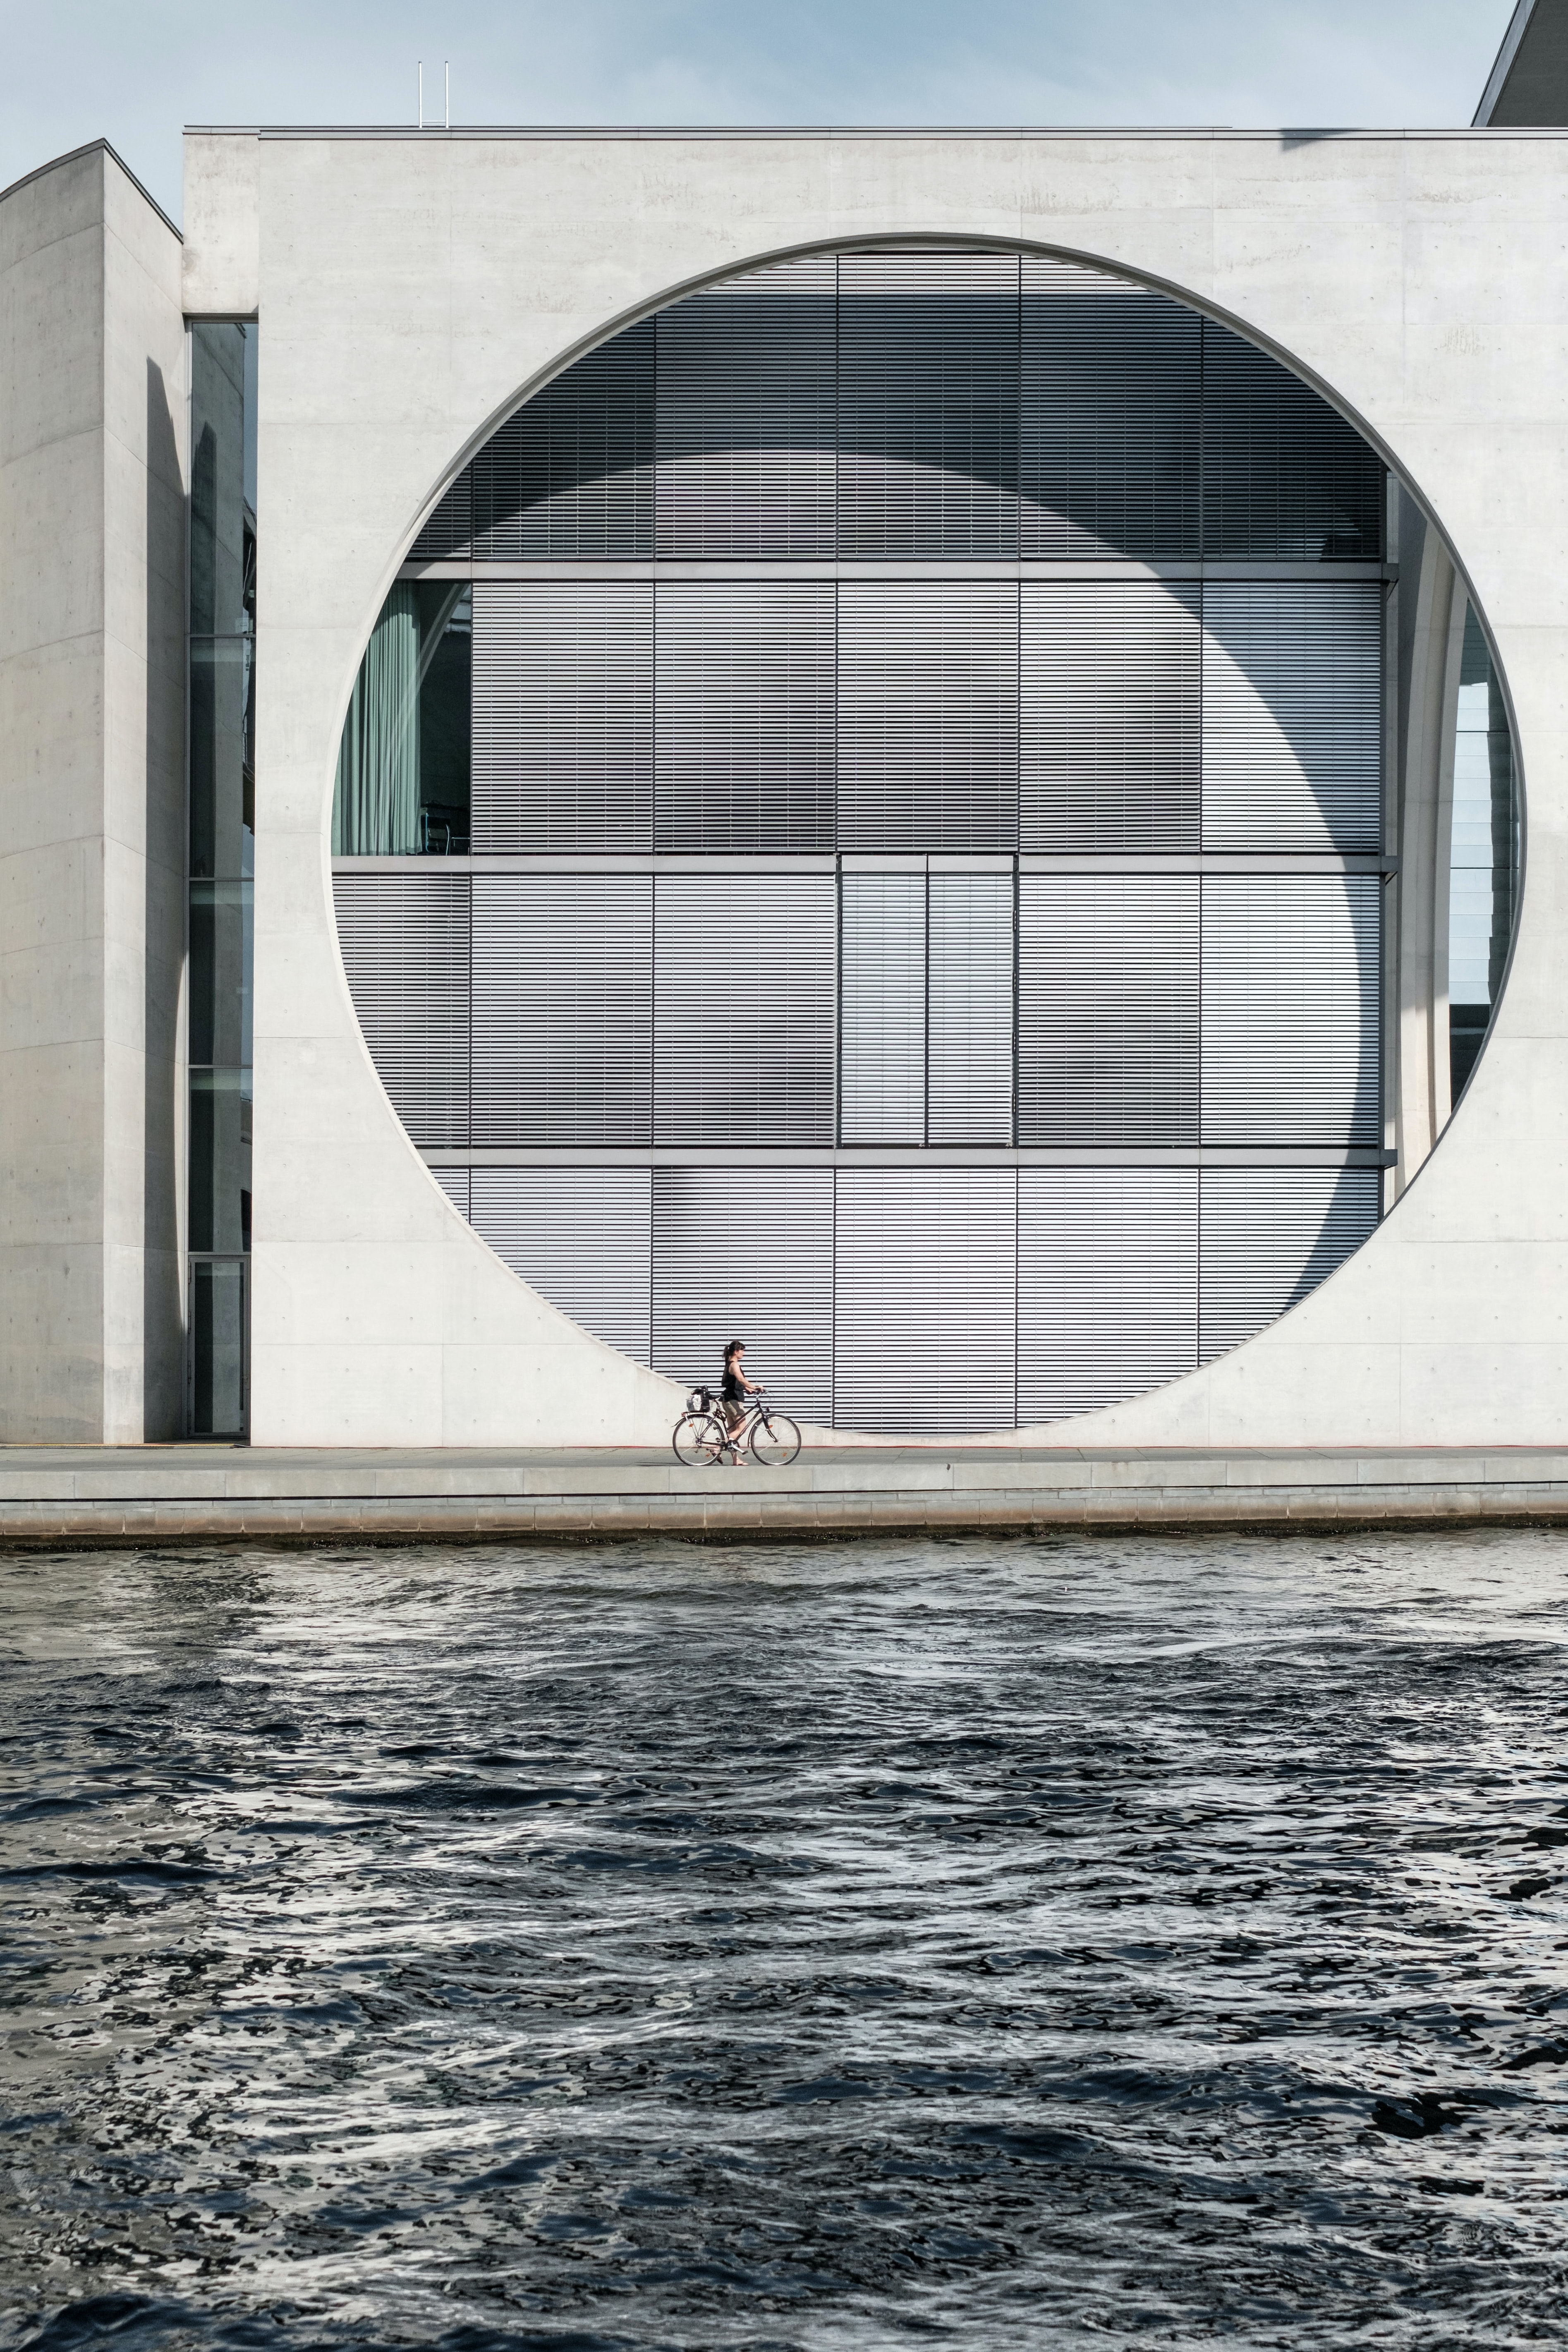 girl riding bike passing through body of water and building